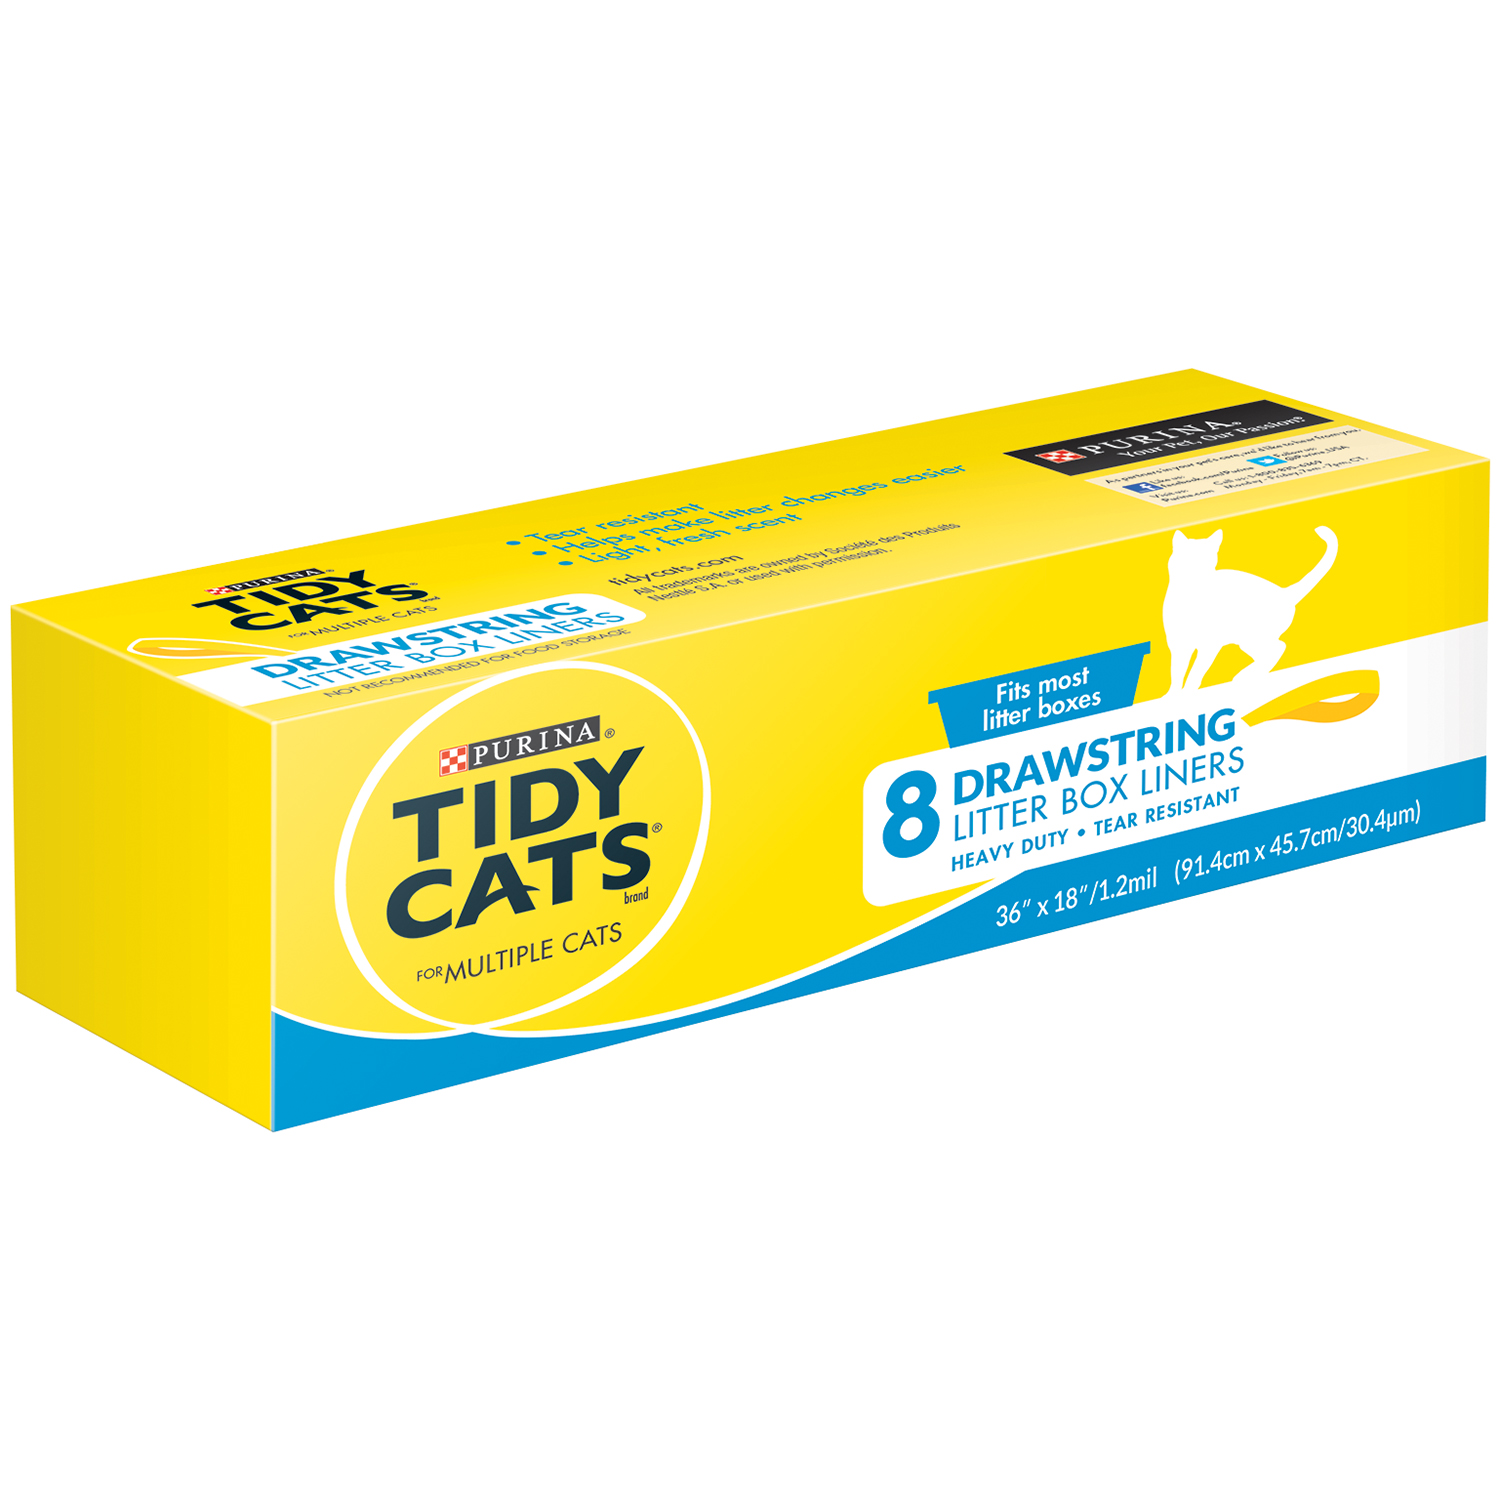 Purina Tidy Cats Drawstring Litter Box Liners for Multiple Cats 8 ct. Box